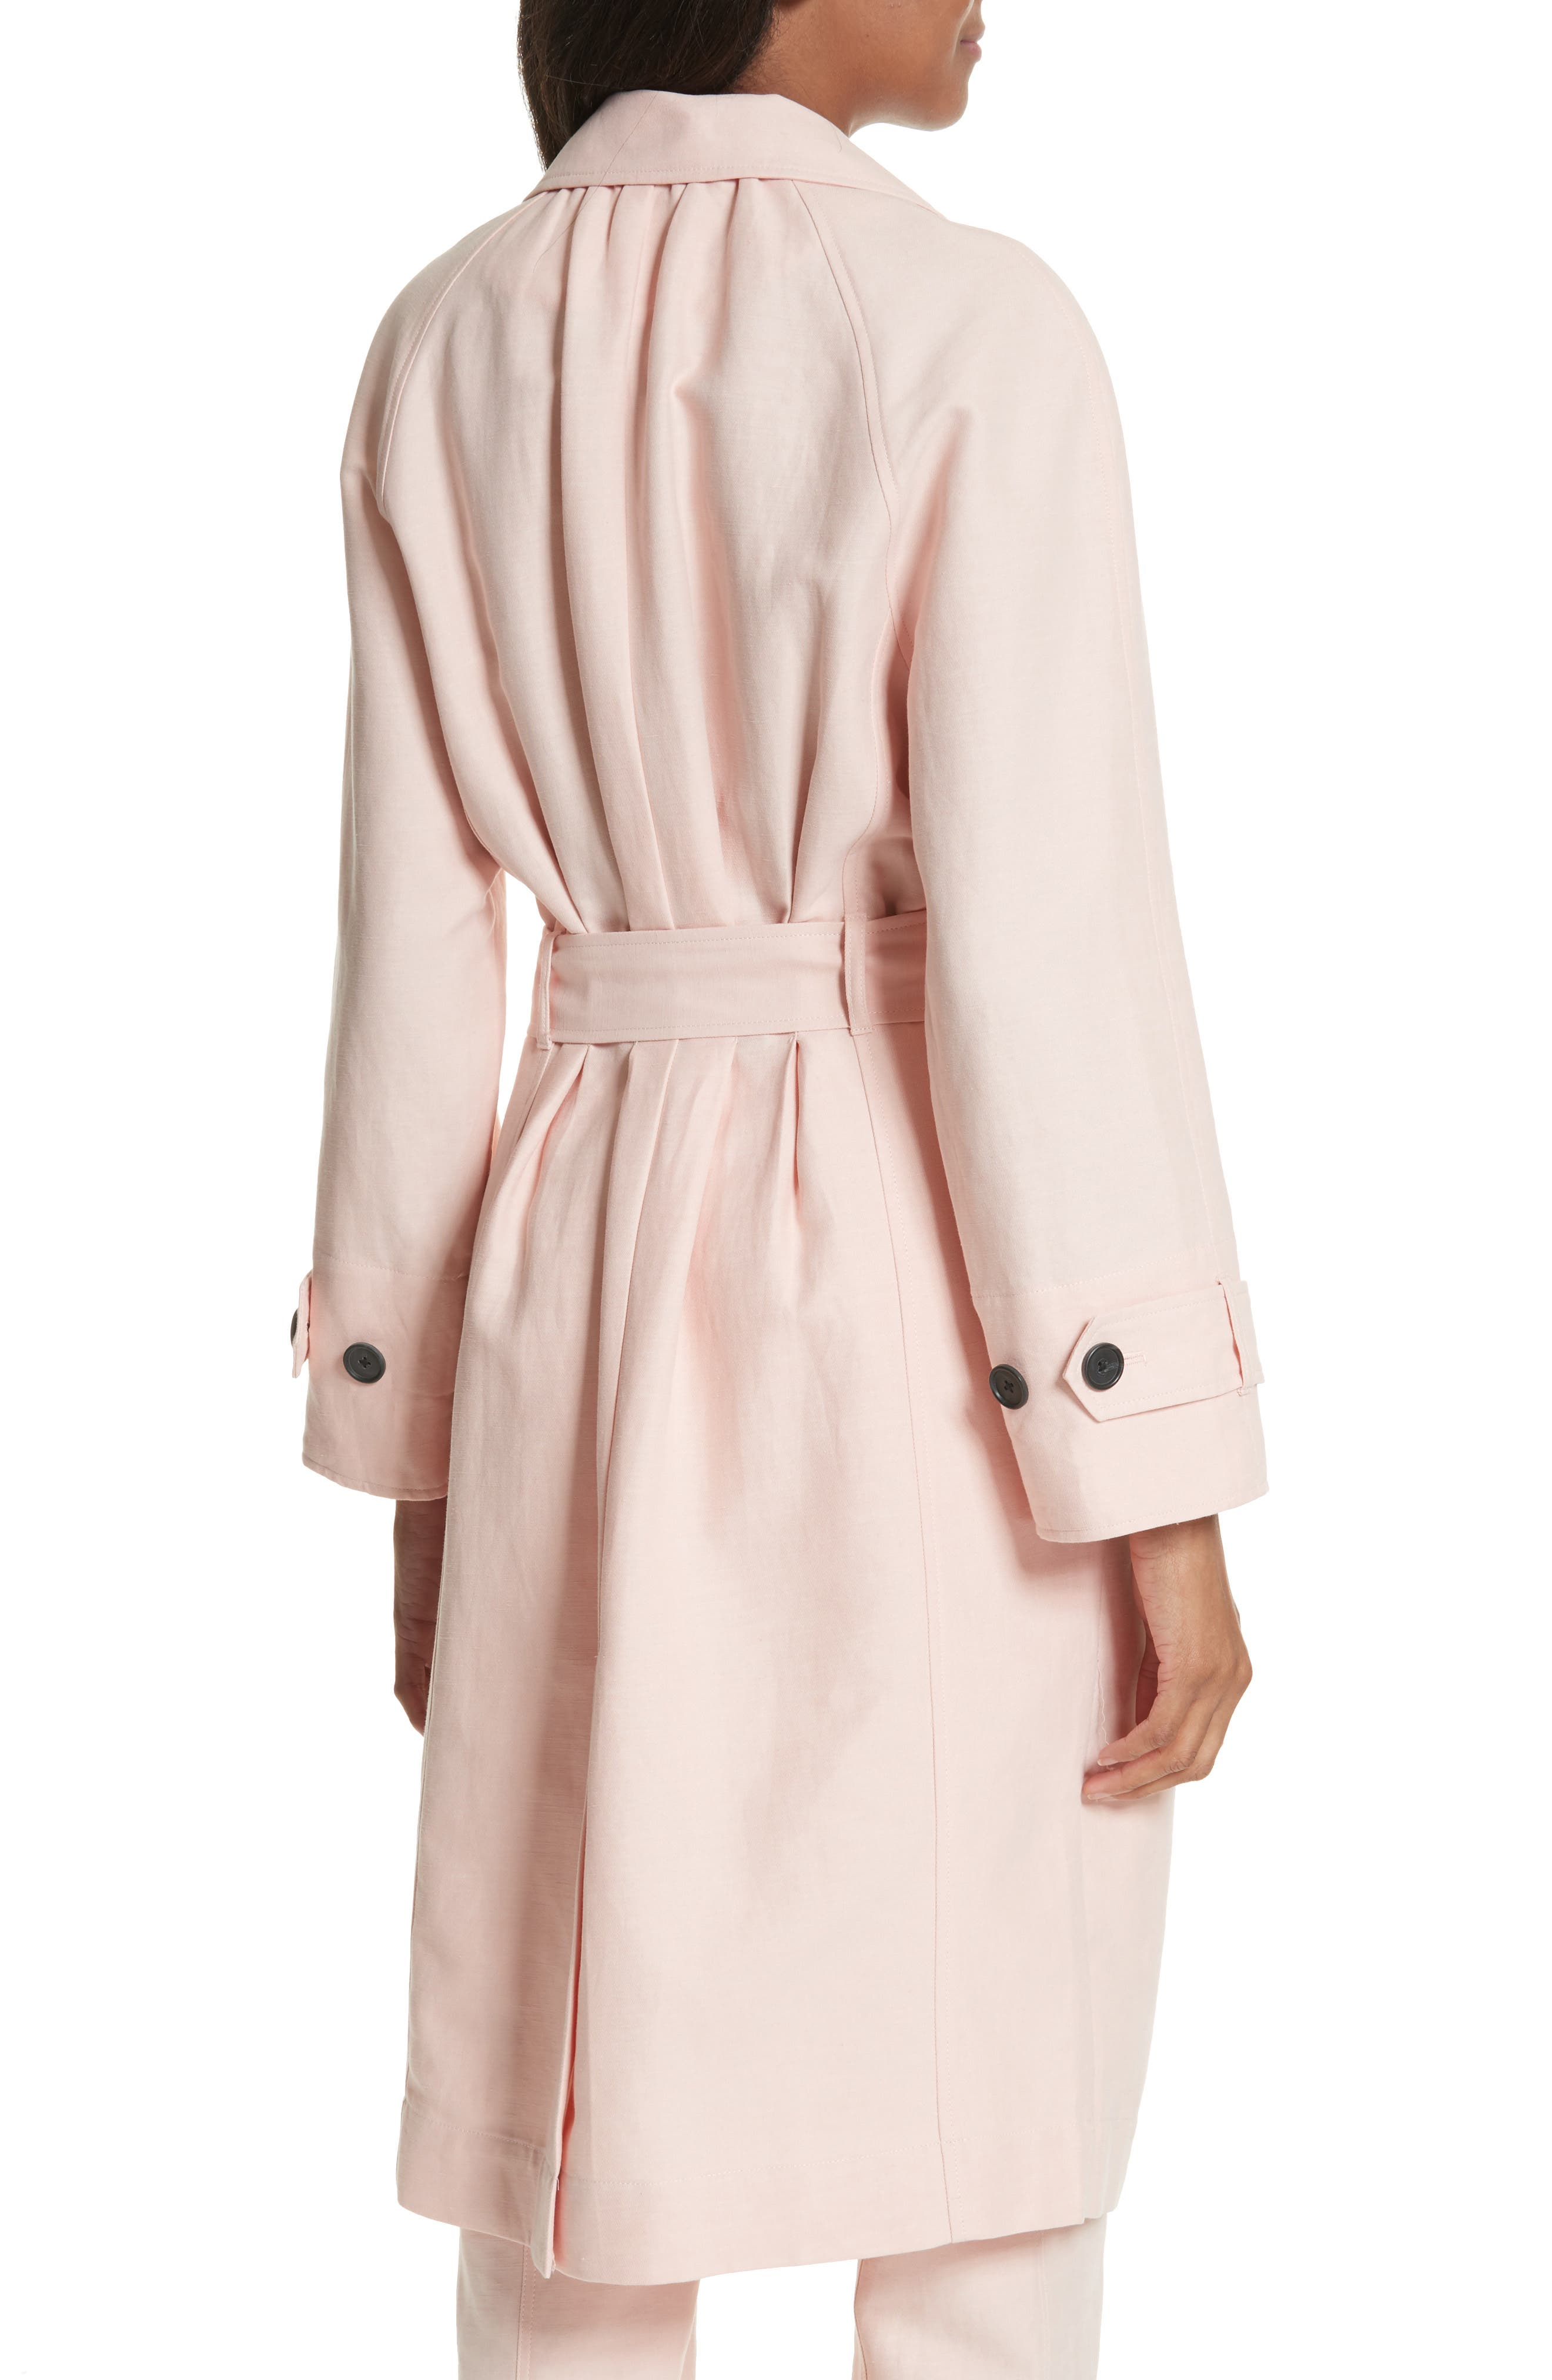 Damonica Trench Coat,                             Alternate thumbnail 2, color,                             Washed Rose